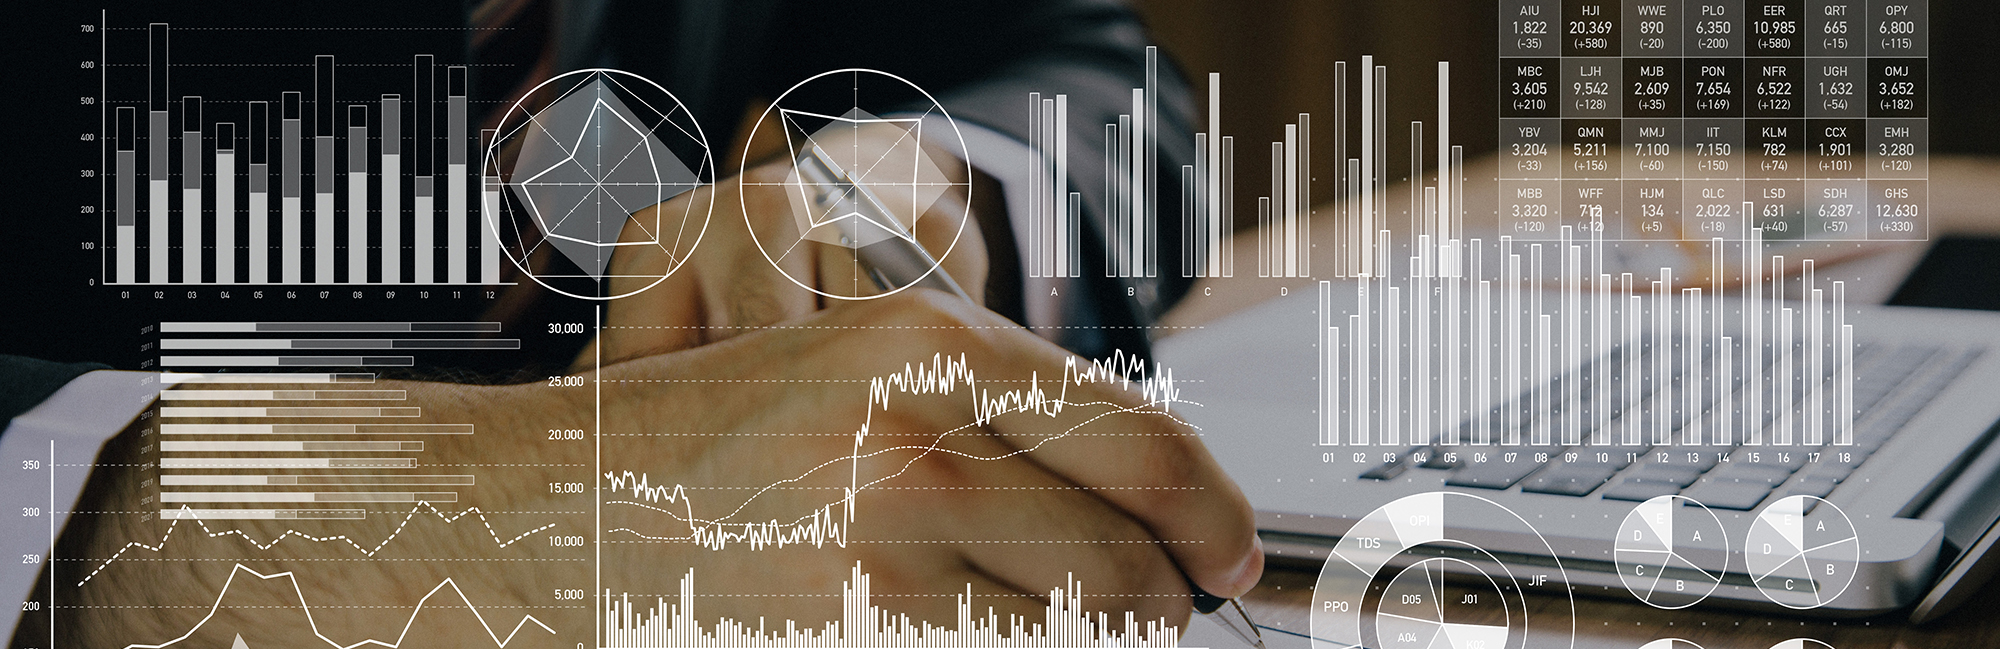 There are many benefits of implementing analytics for cost management.